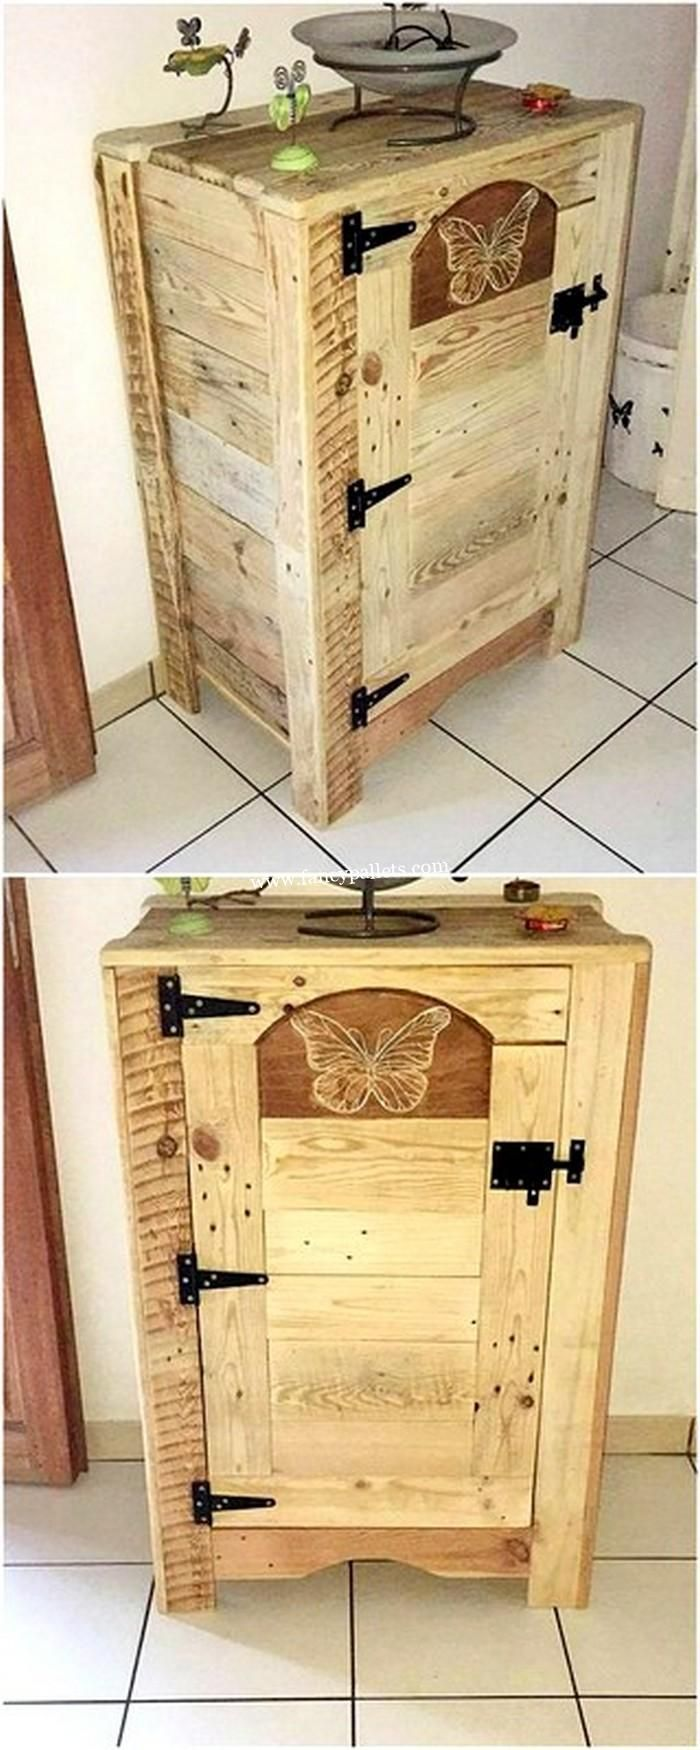 Homemade Pallet Cabinet Wood Pallets Old Pallets Wooden Projects [ 1750 x 700 Pixel ]